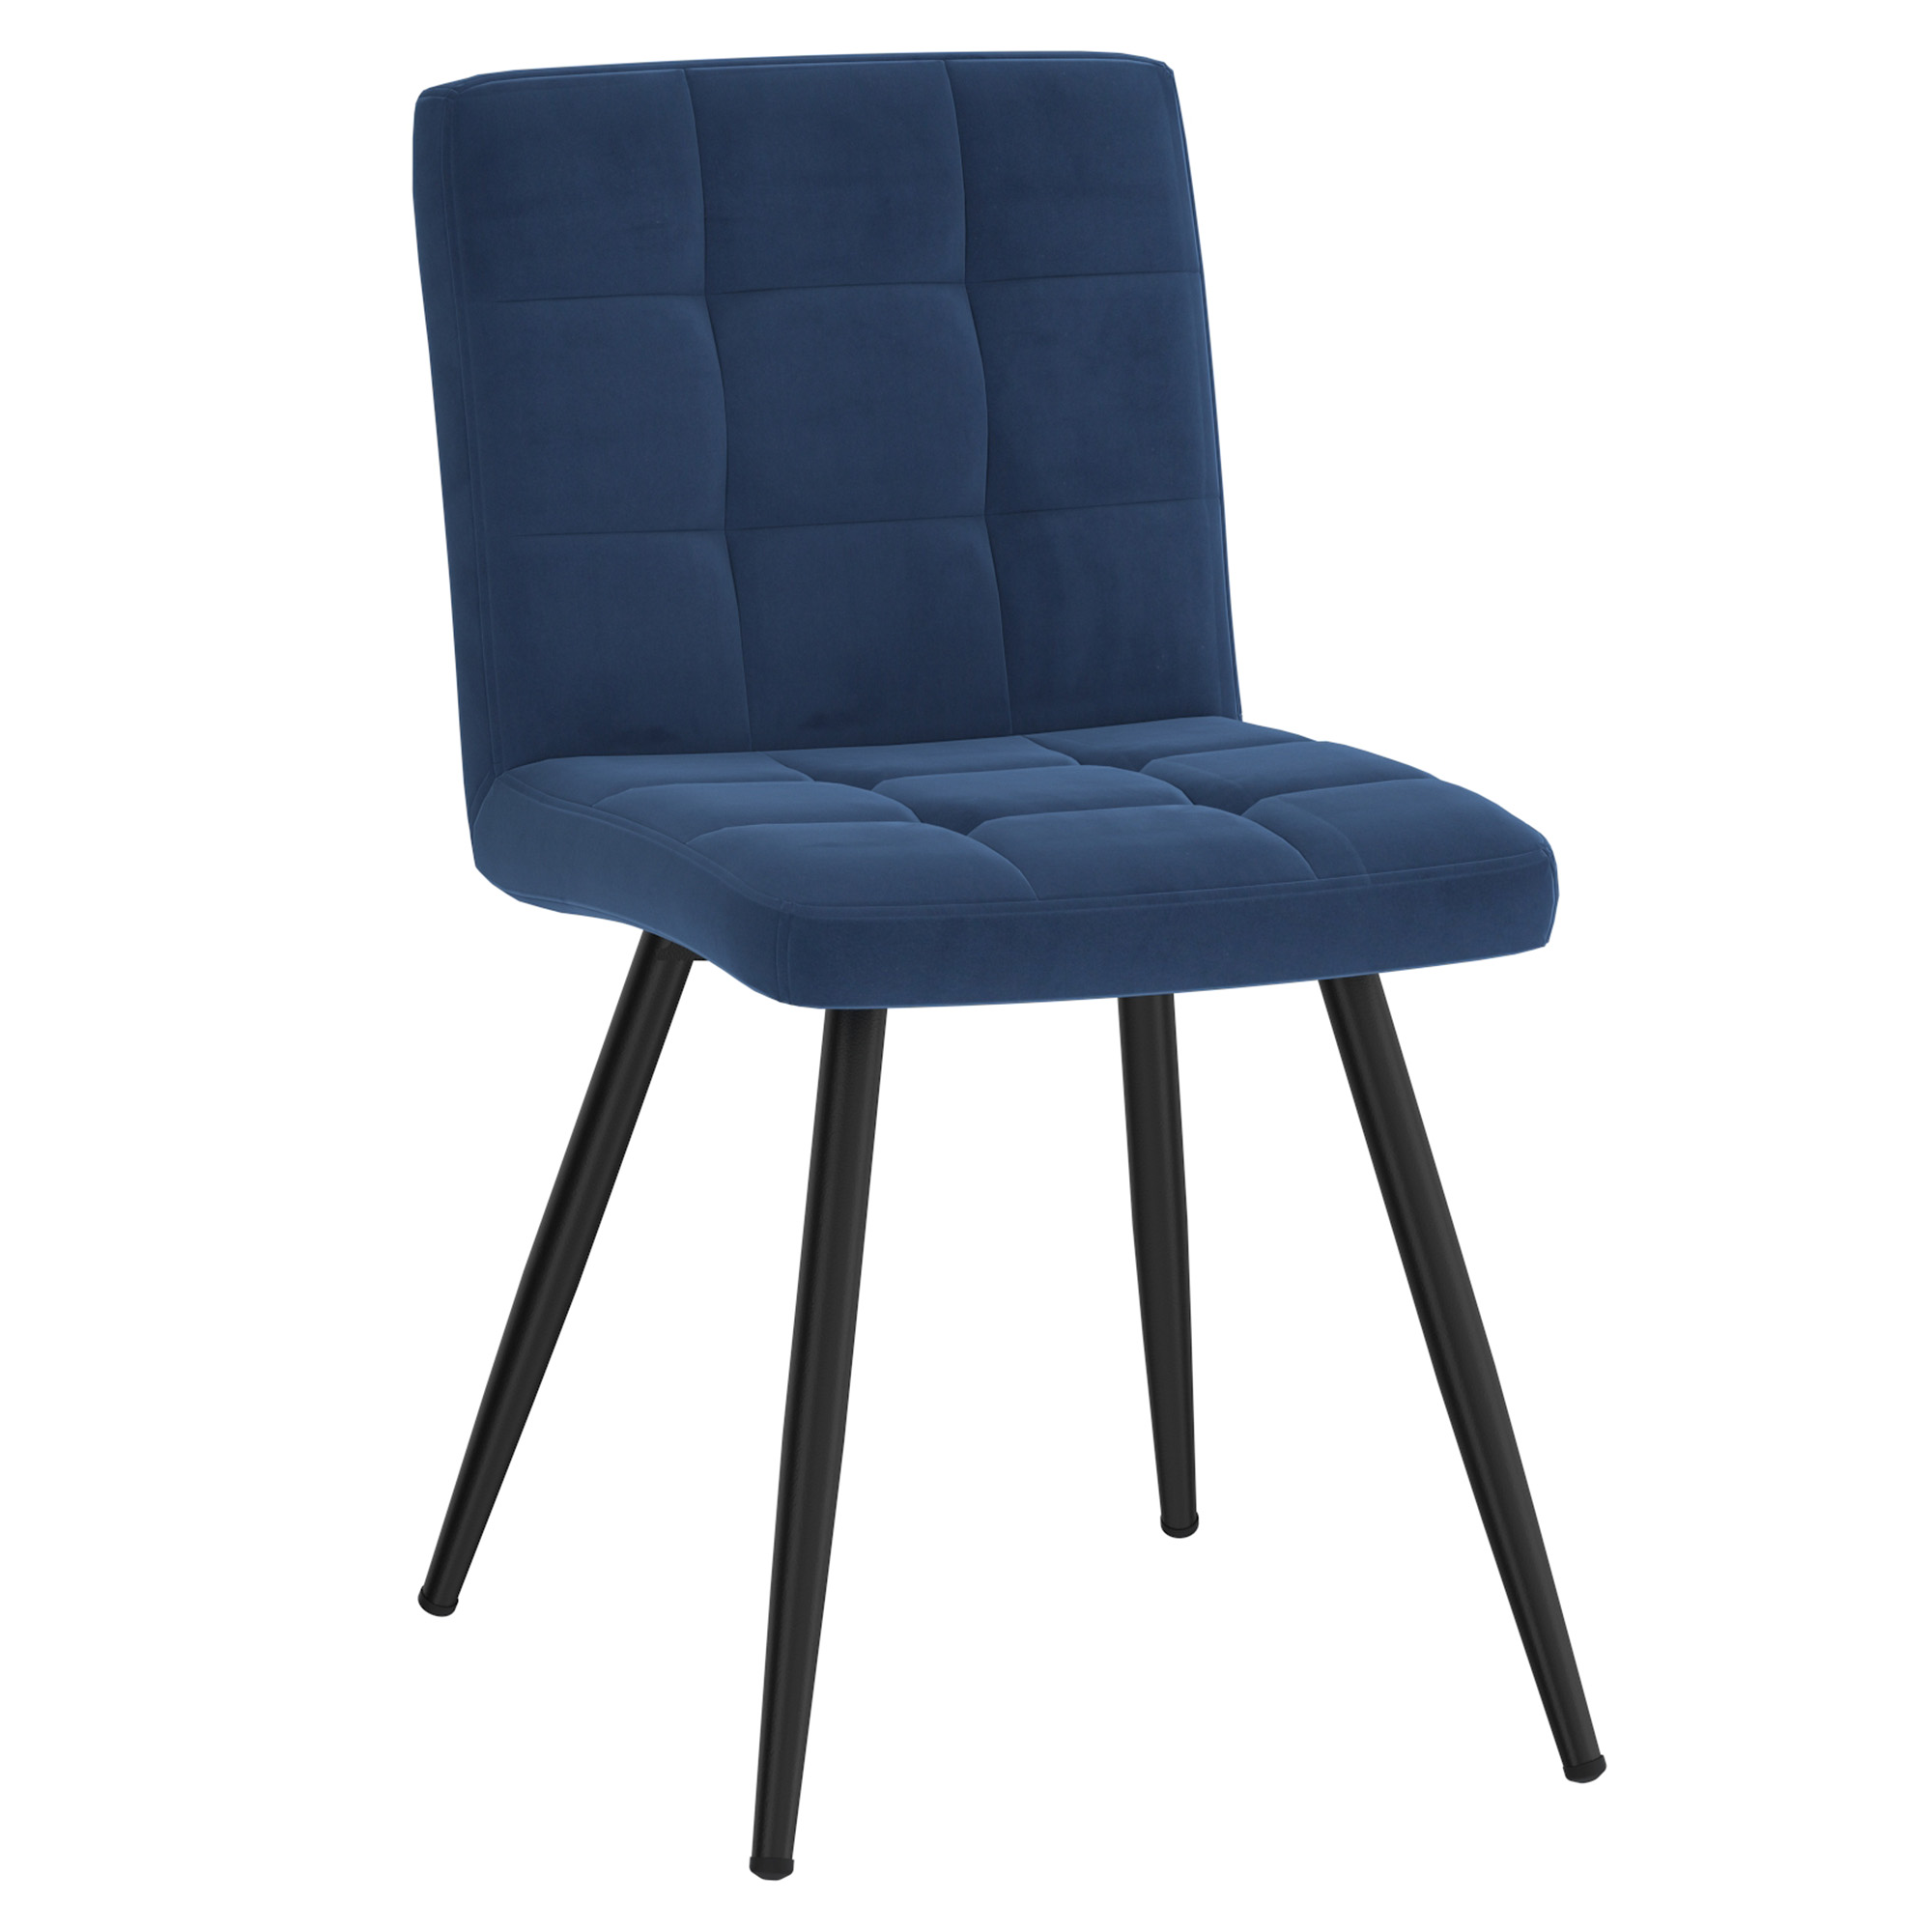 Set of 2 Contemporary Velvet & Metal Side Chair in Blue